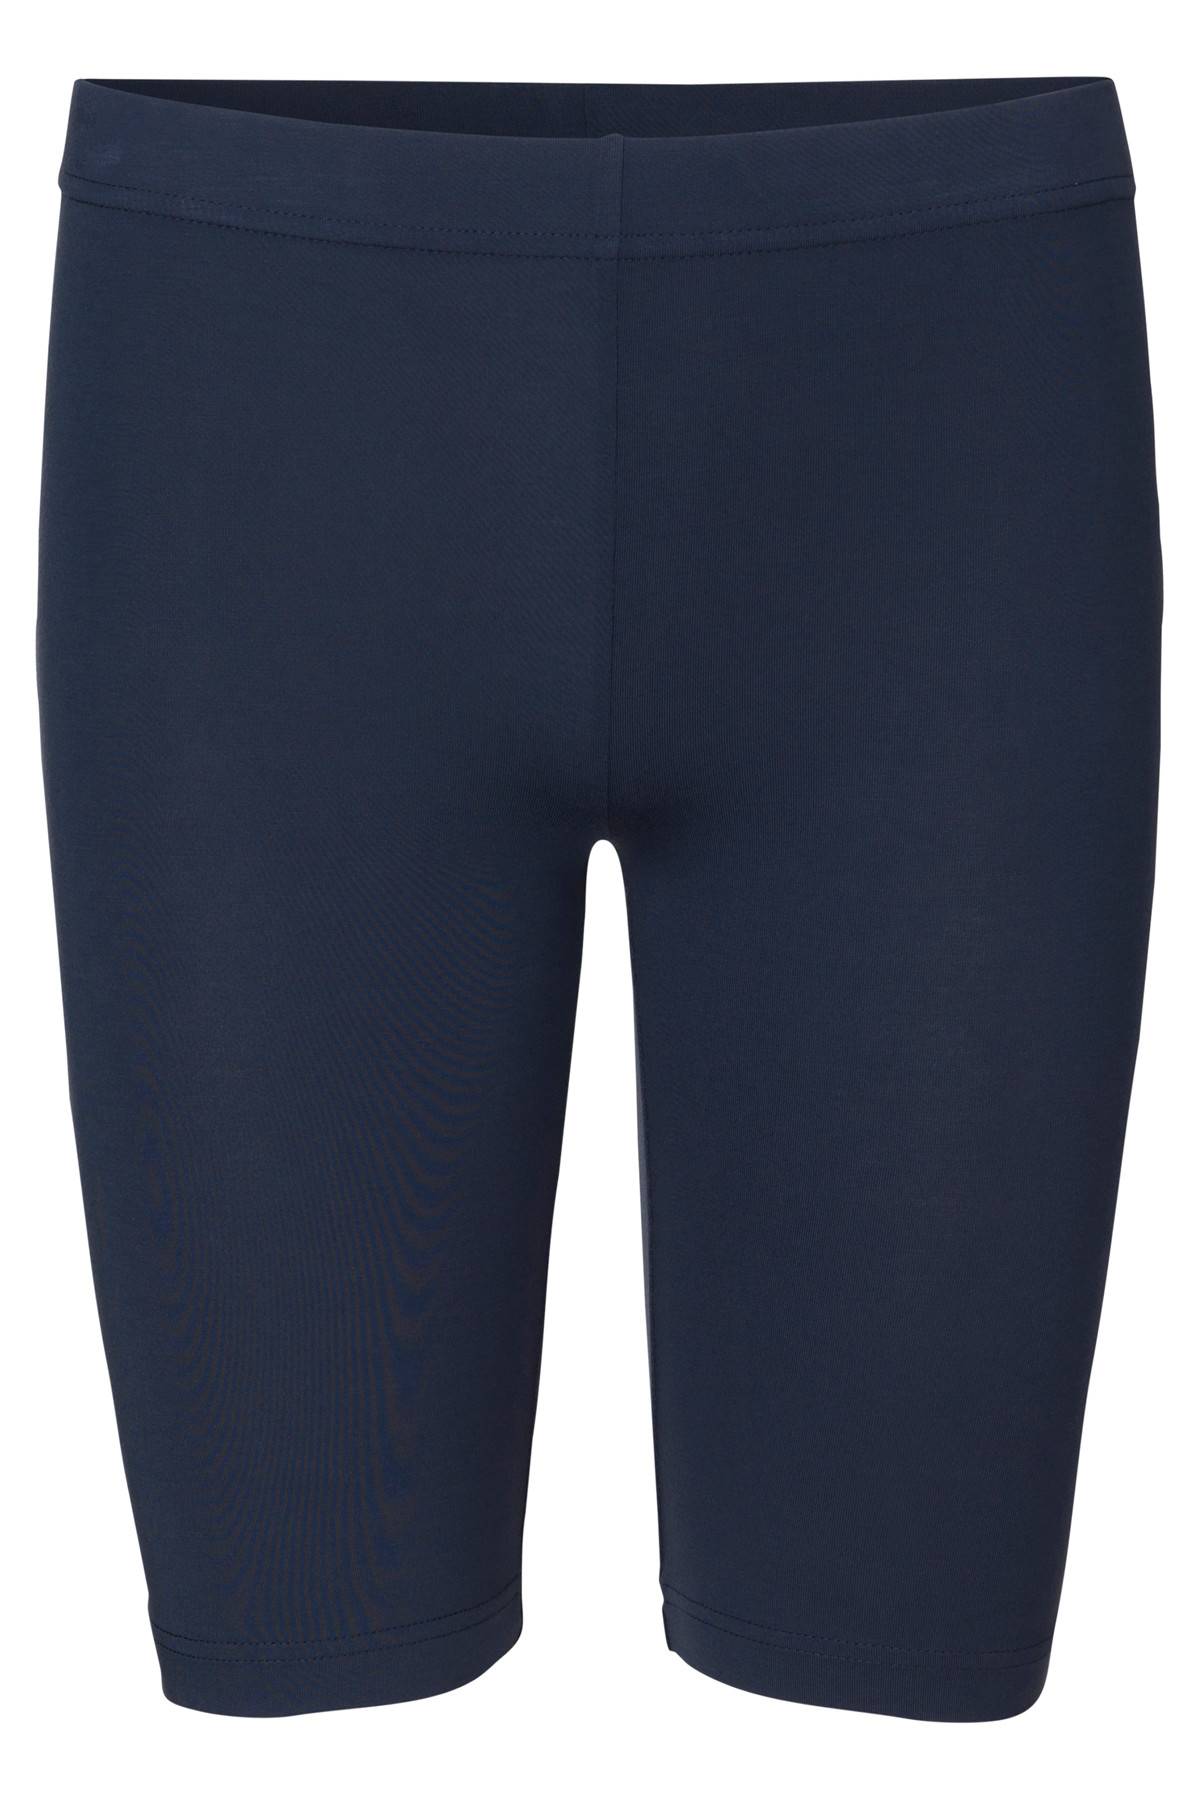 NOA NOA SHORT LEGGINGS 1-9349-2 00690 (Blue, XXS)